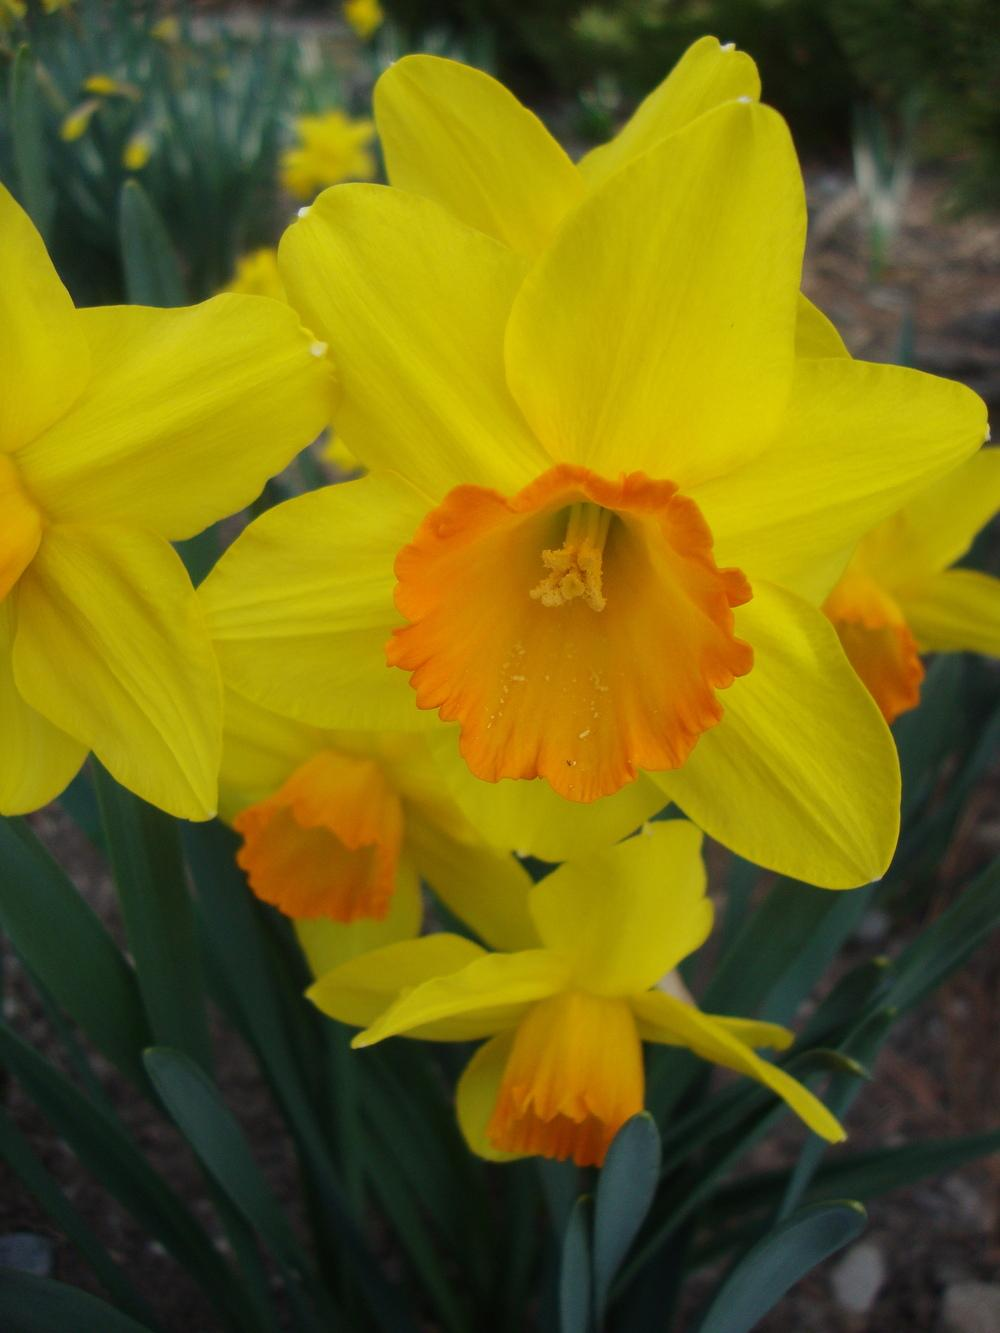 Photo of Daffodils (Narcissus) uploaded by Paul2032